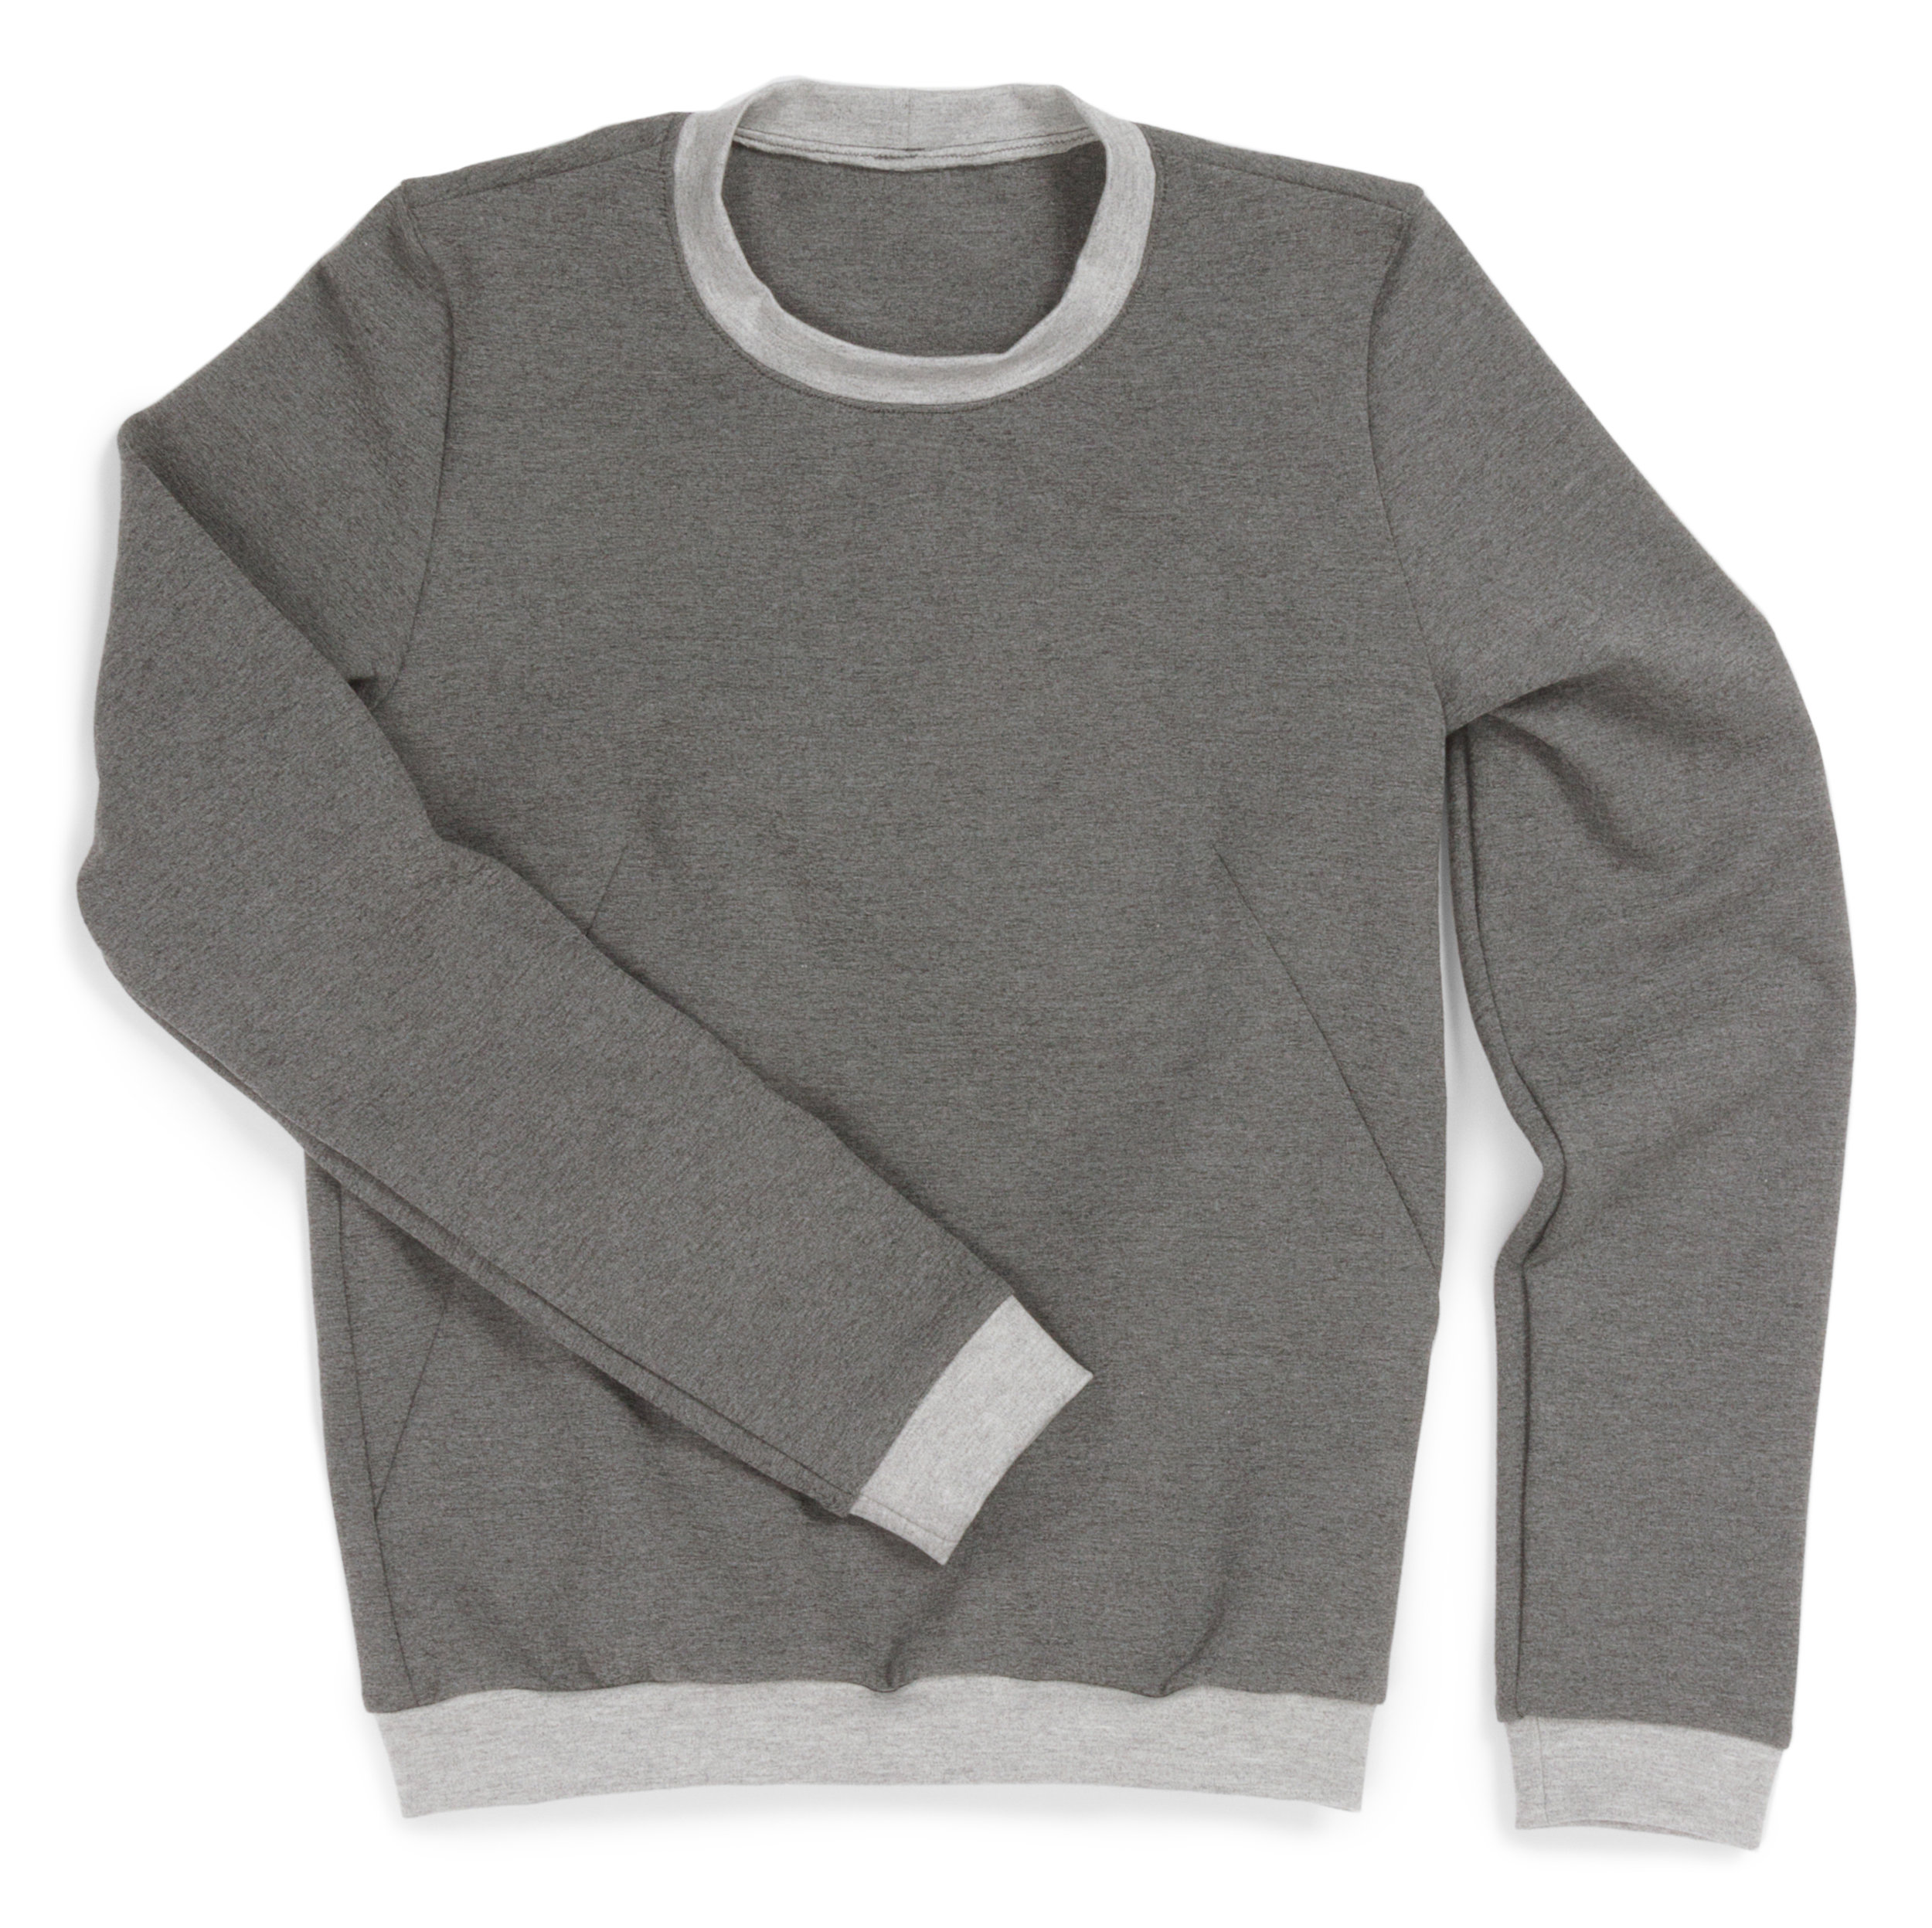 Sloane Sweatshirt   designed by   Named Clothing  , made by Erika Bea, featuring   Arietta Ponte de Roma Heather